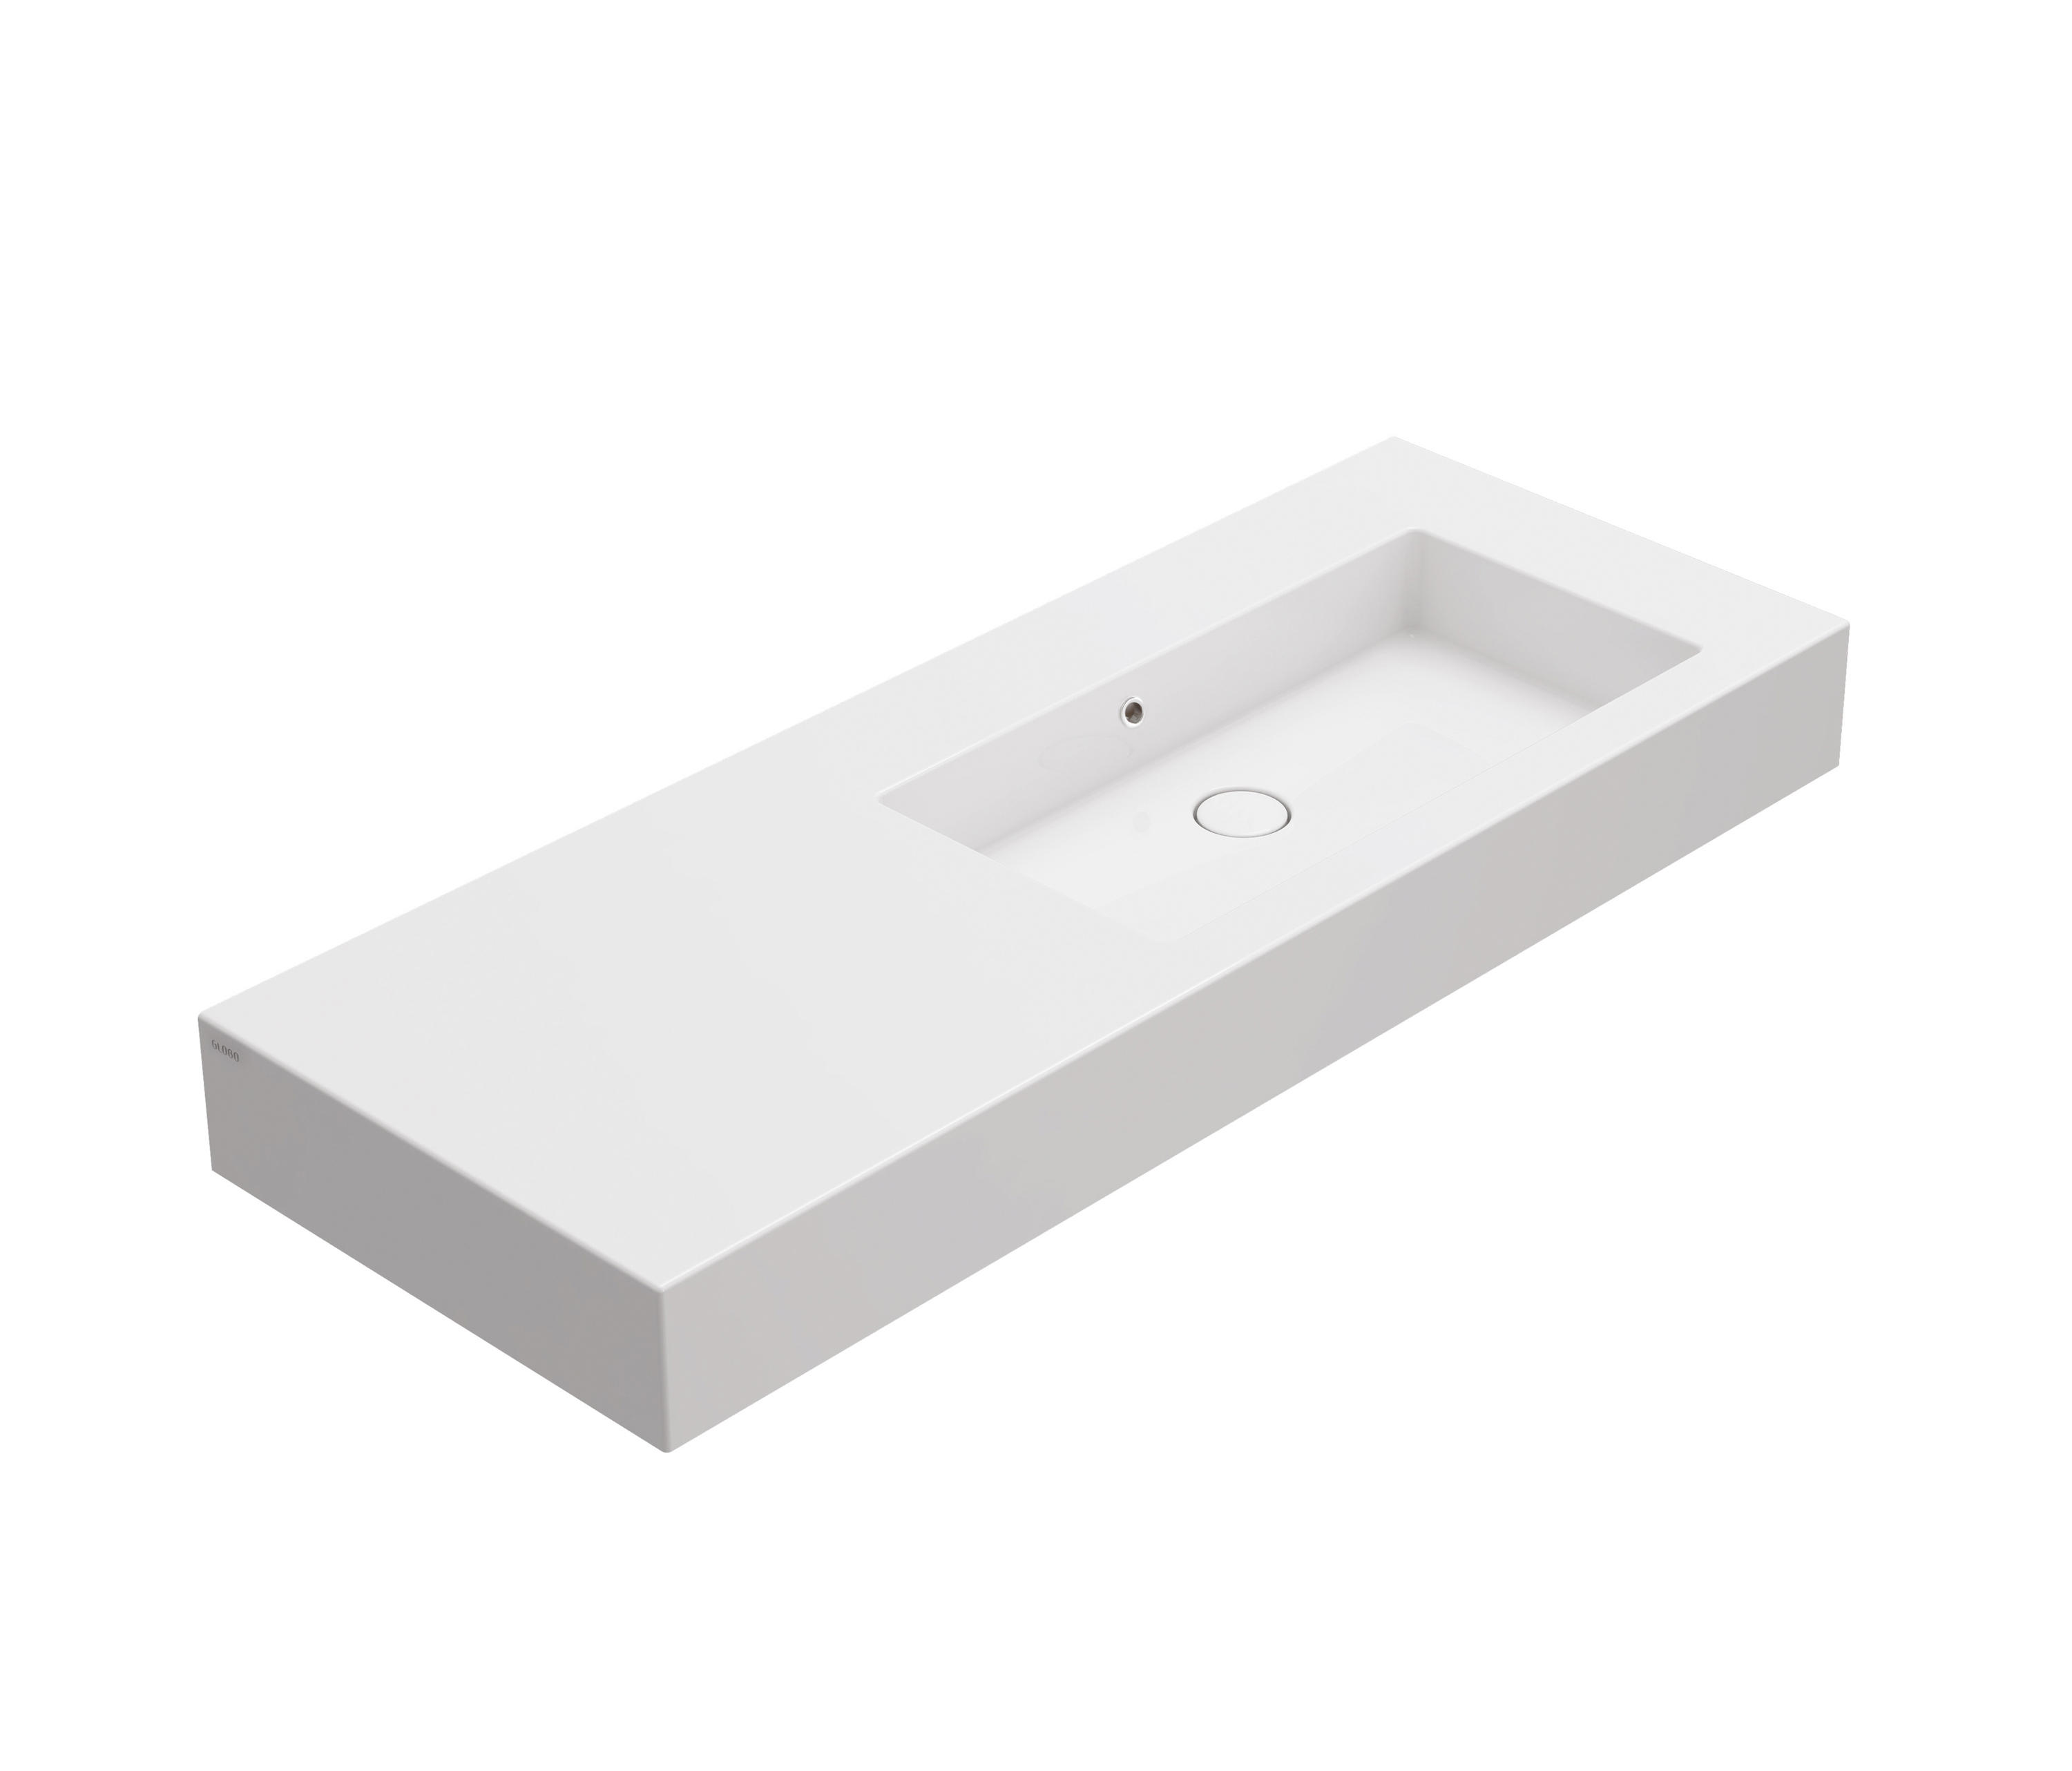 Piano Lavabo Ceramica Globo.Incantho Basin 136 Wash Basins From Globo Architonic